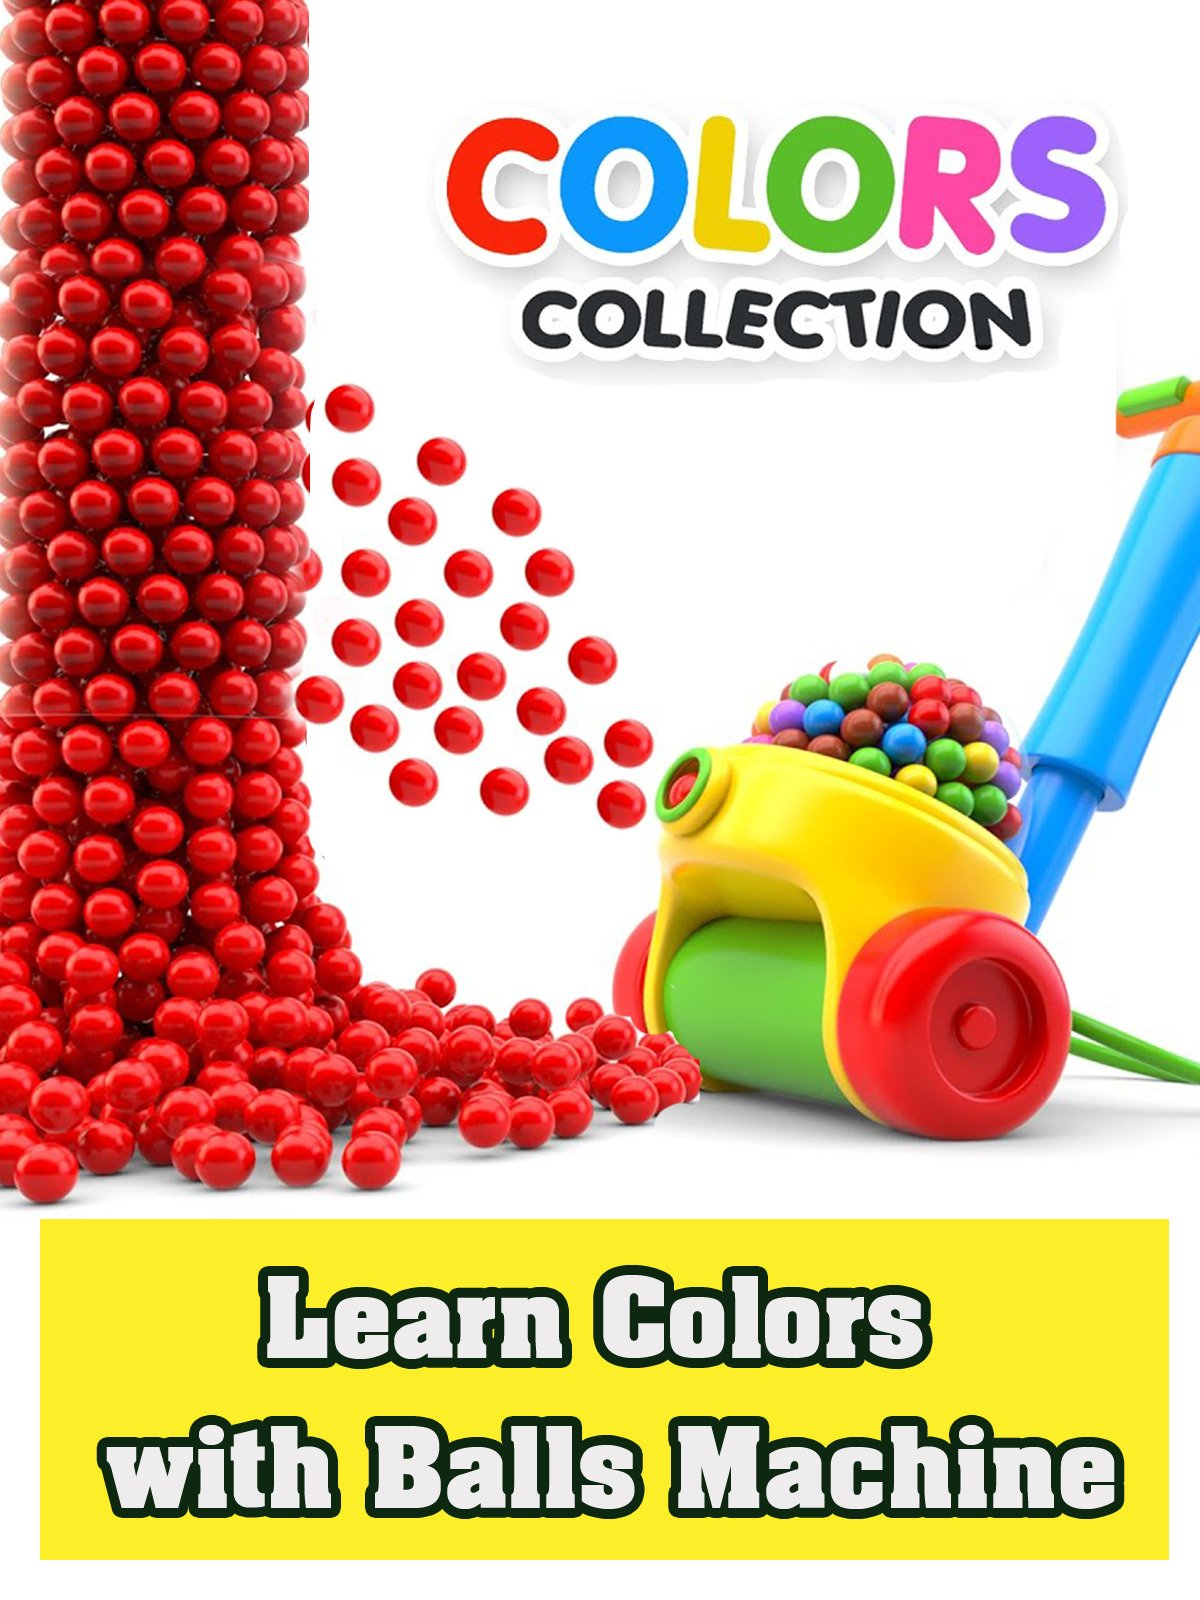 Learn Colors with Balls Machine